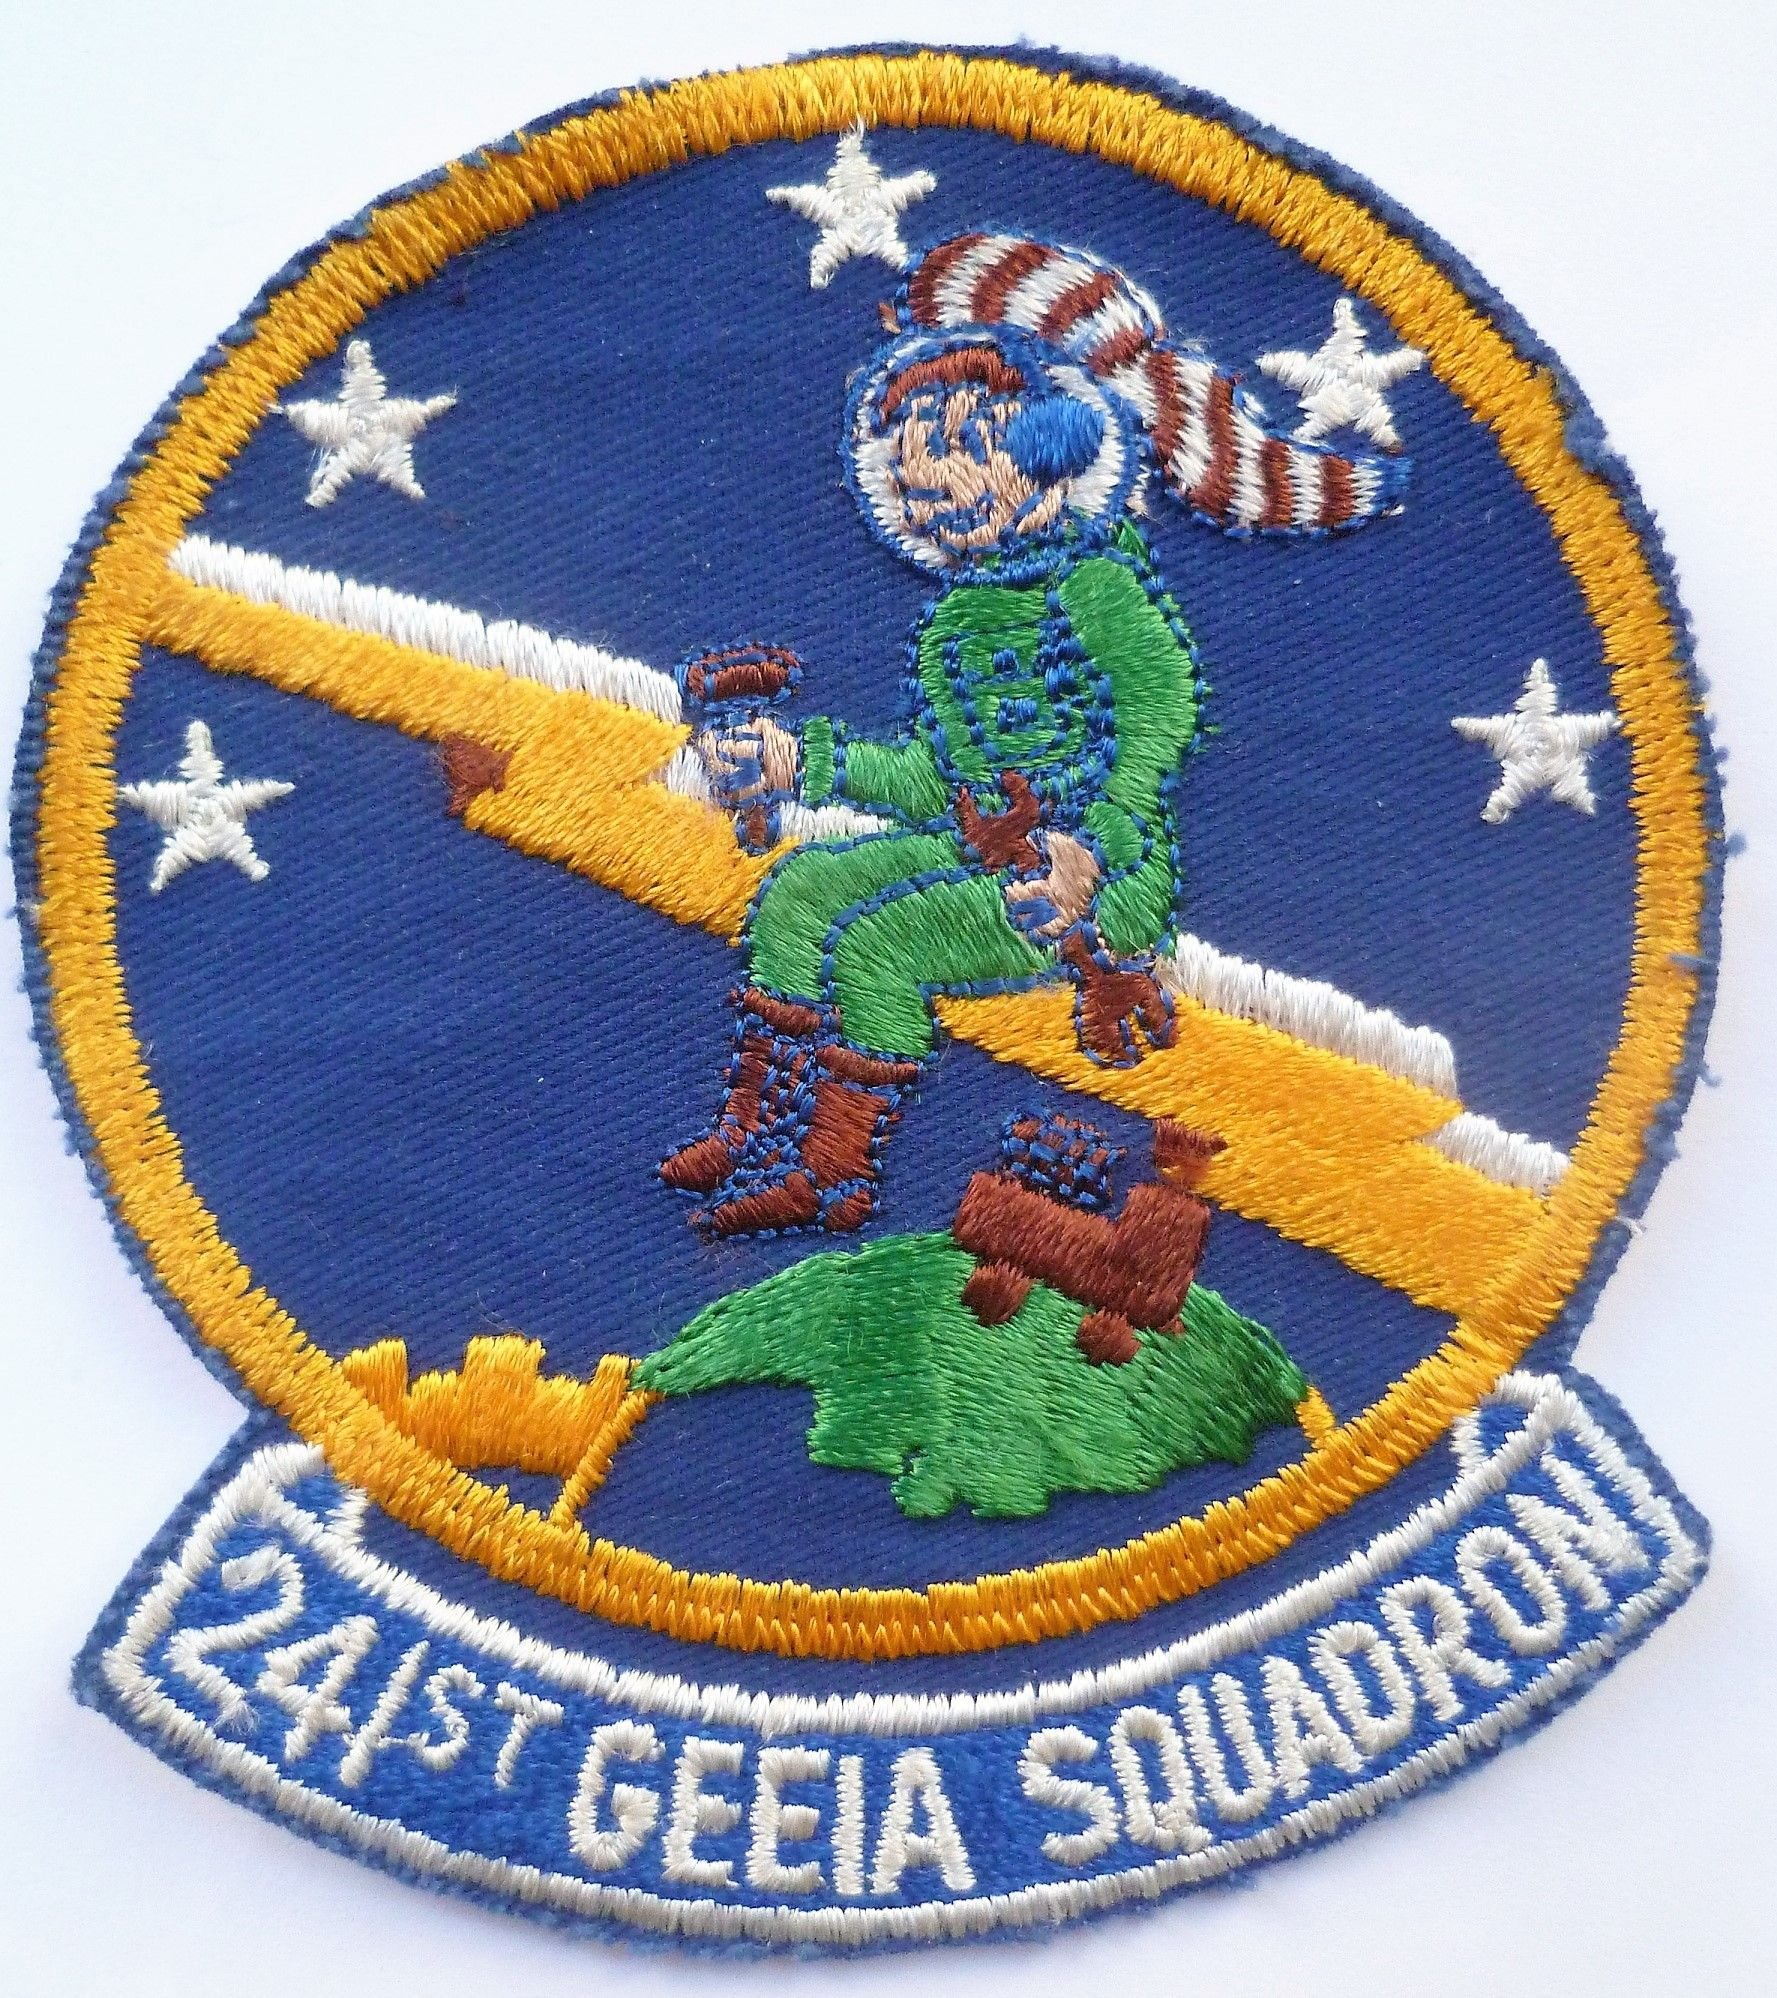 United States Air Force 241st GEEIA Squadron Cloth Patch